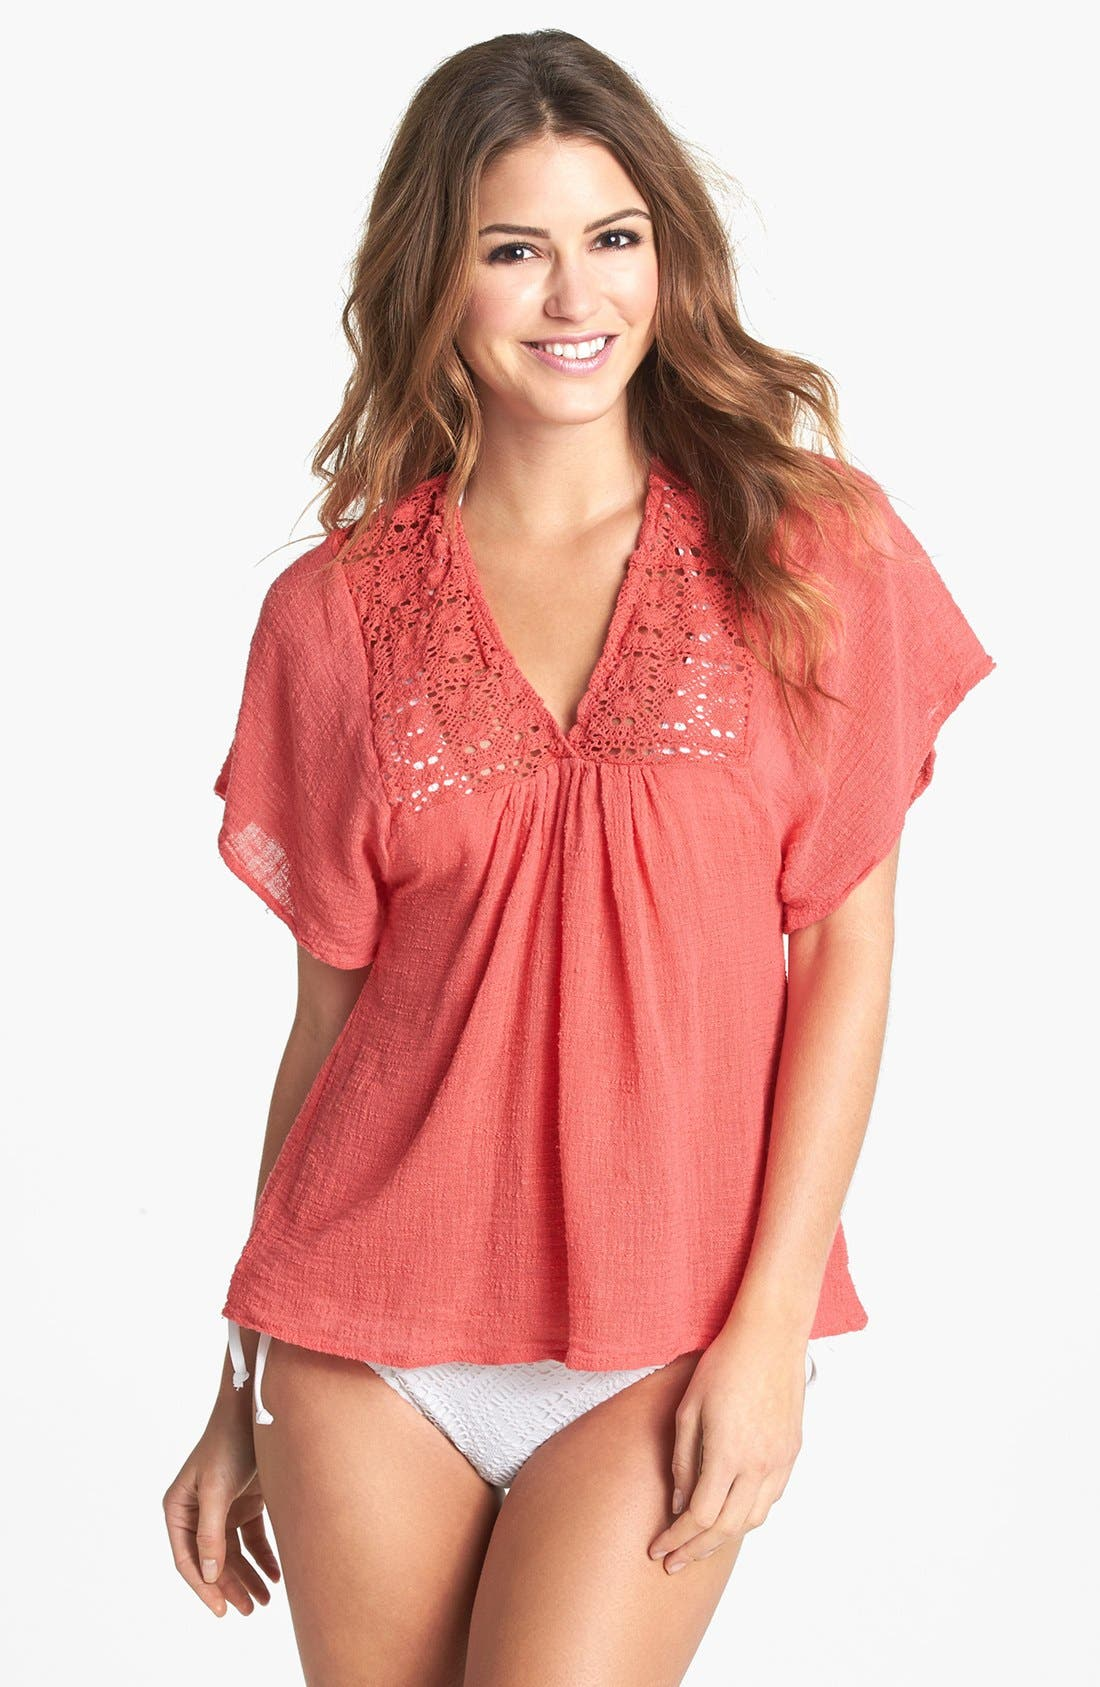 Alternate Image 1 Selected - Surf Gypsy Crochet Top